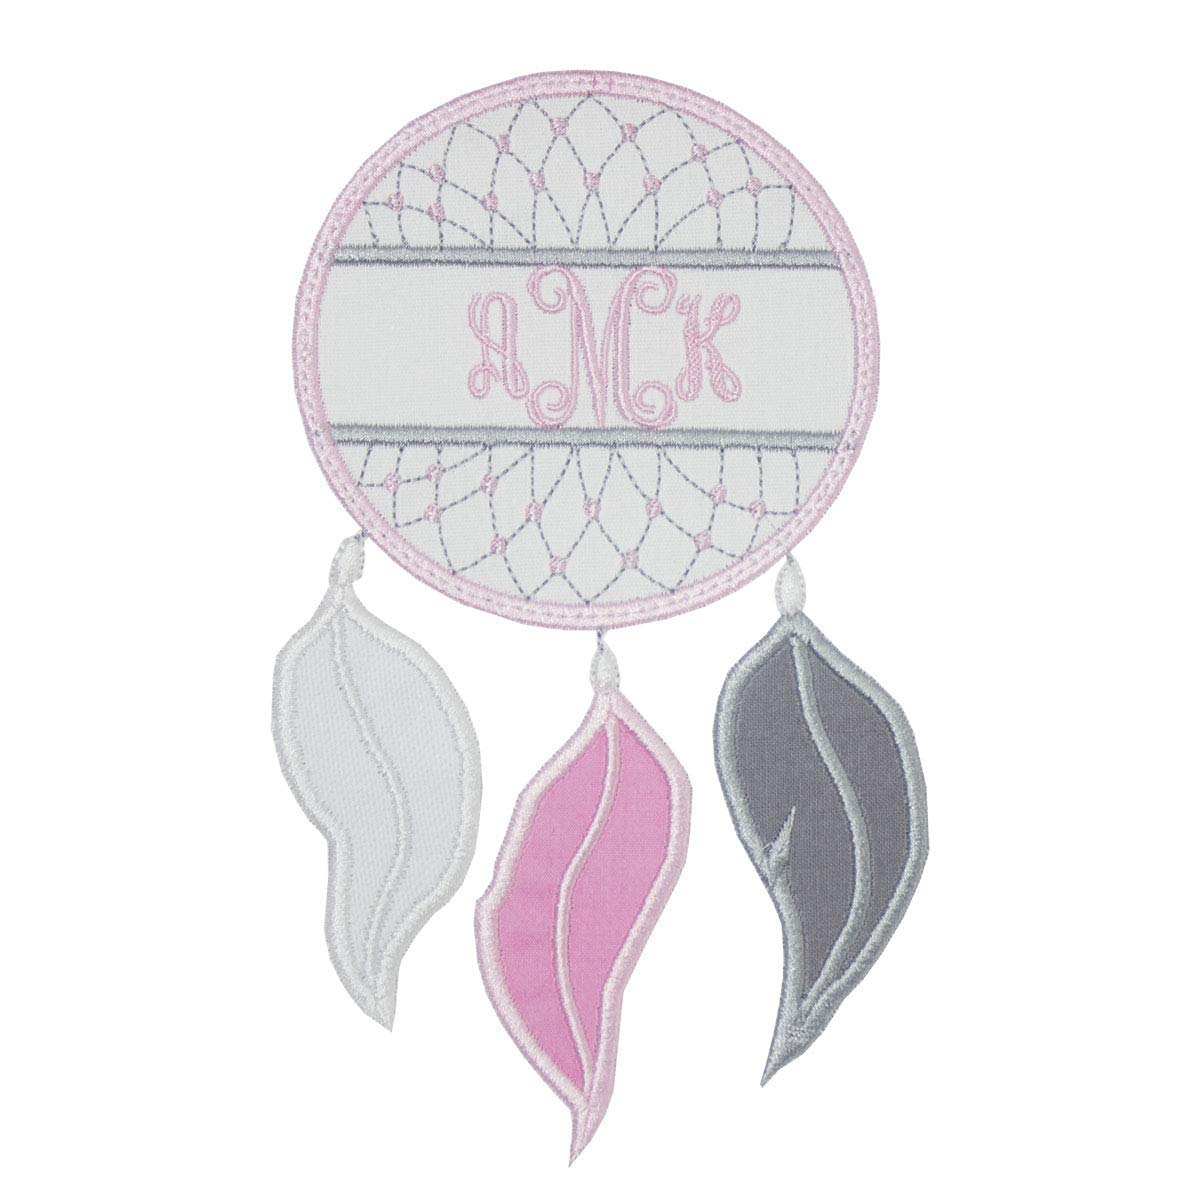 Girl Ghost Embroidered Monogram Patch your choice of sew on or iron on patch